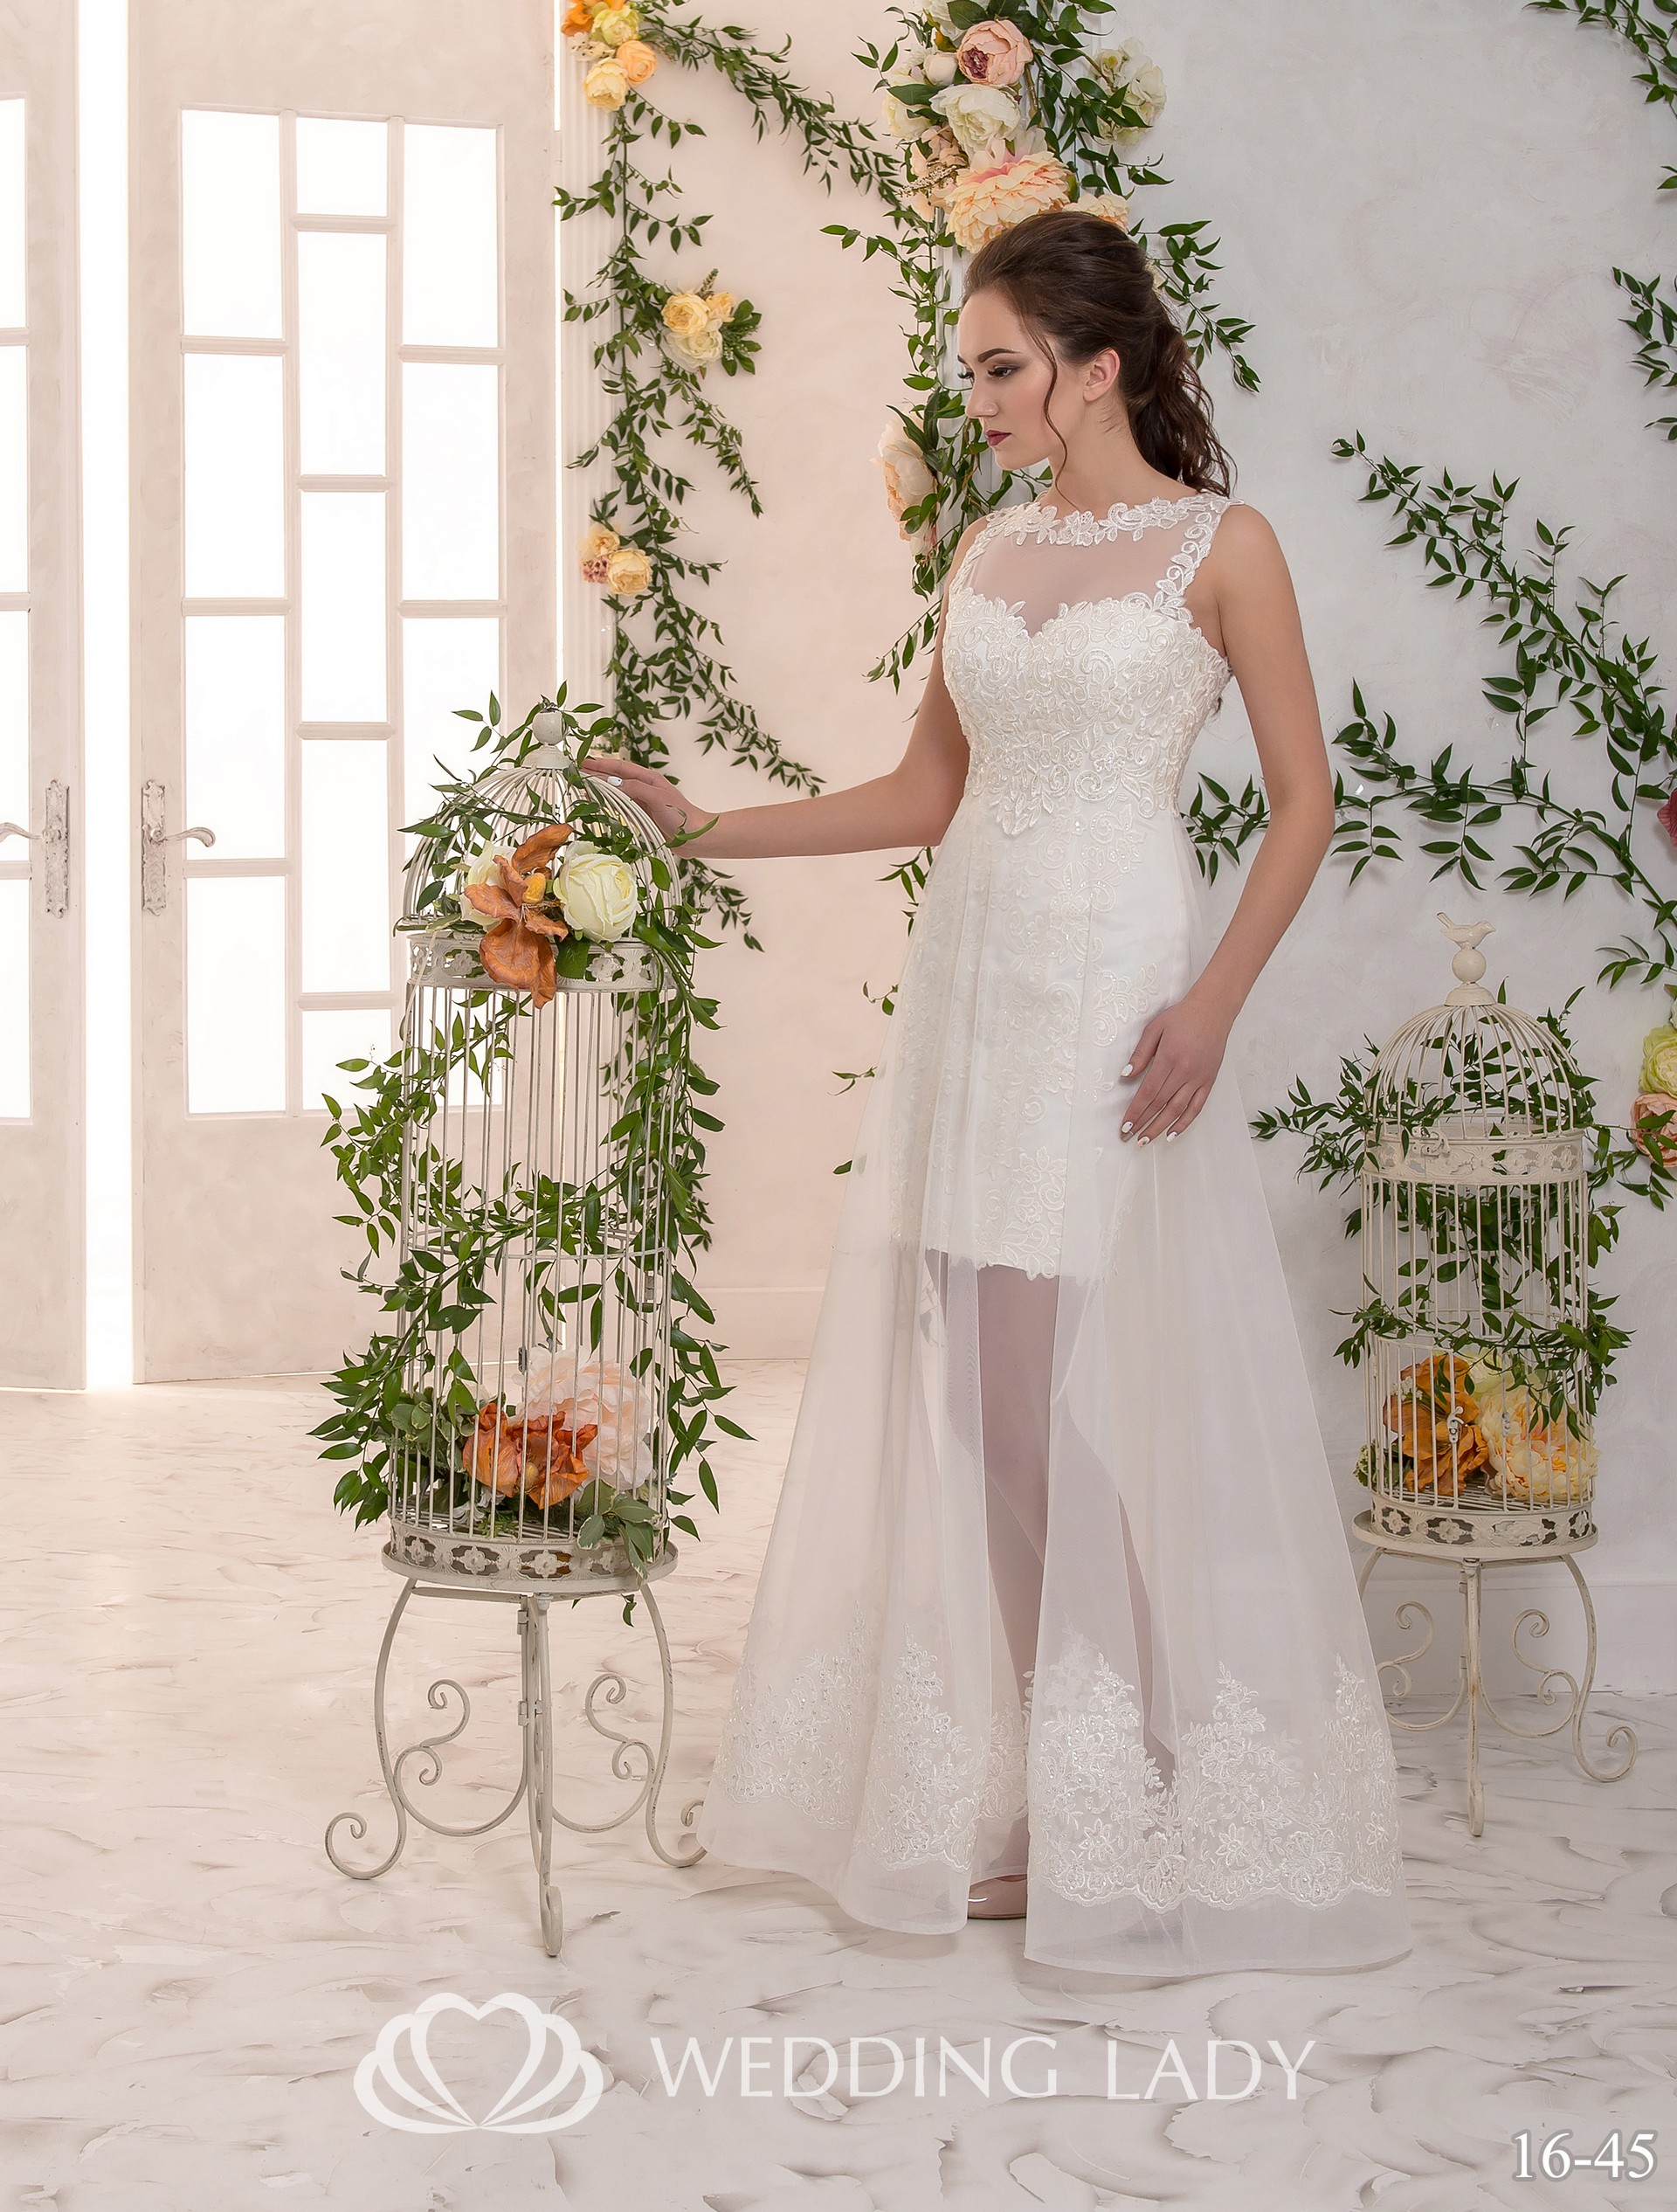 https://wedding-lady.com/images/stories/virtuemart/product/16-45 (1).jpg